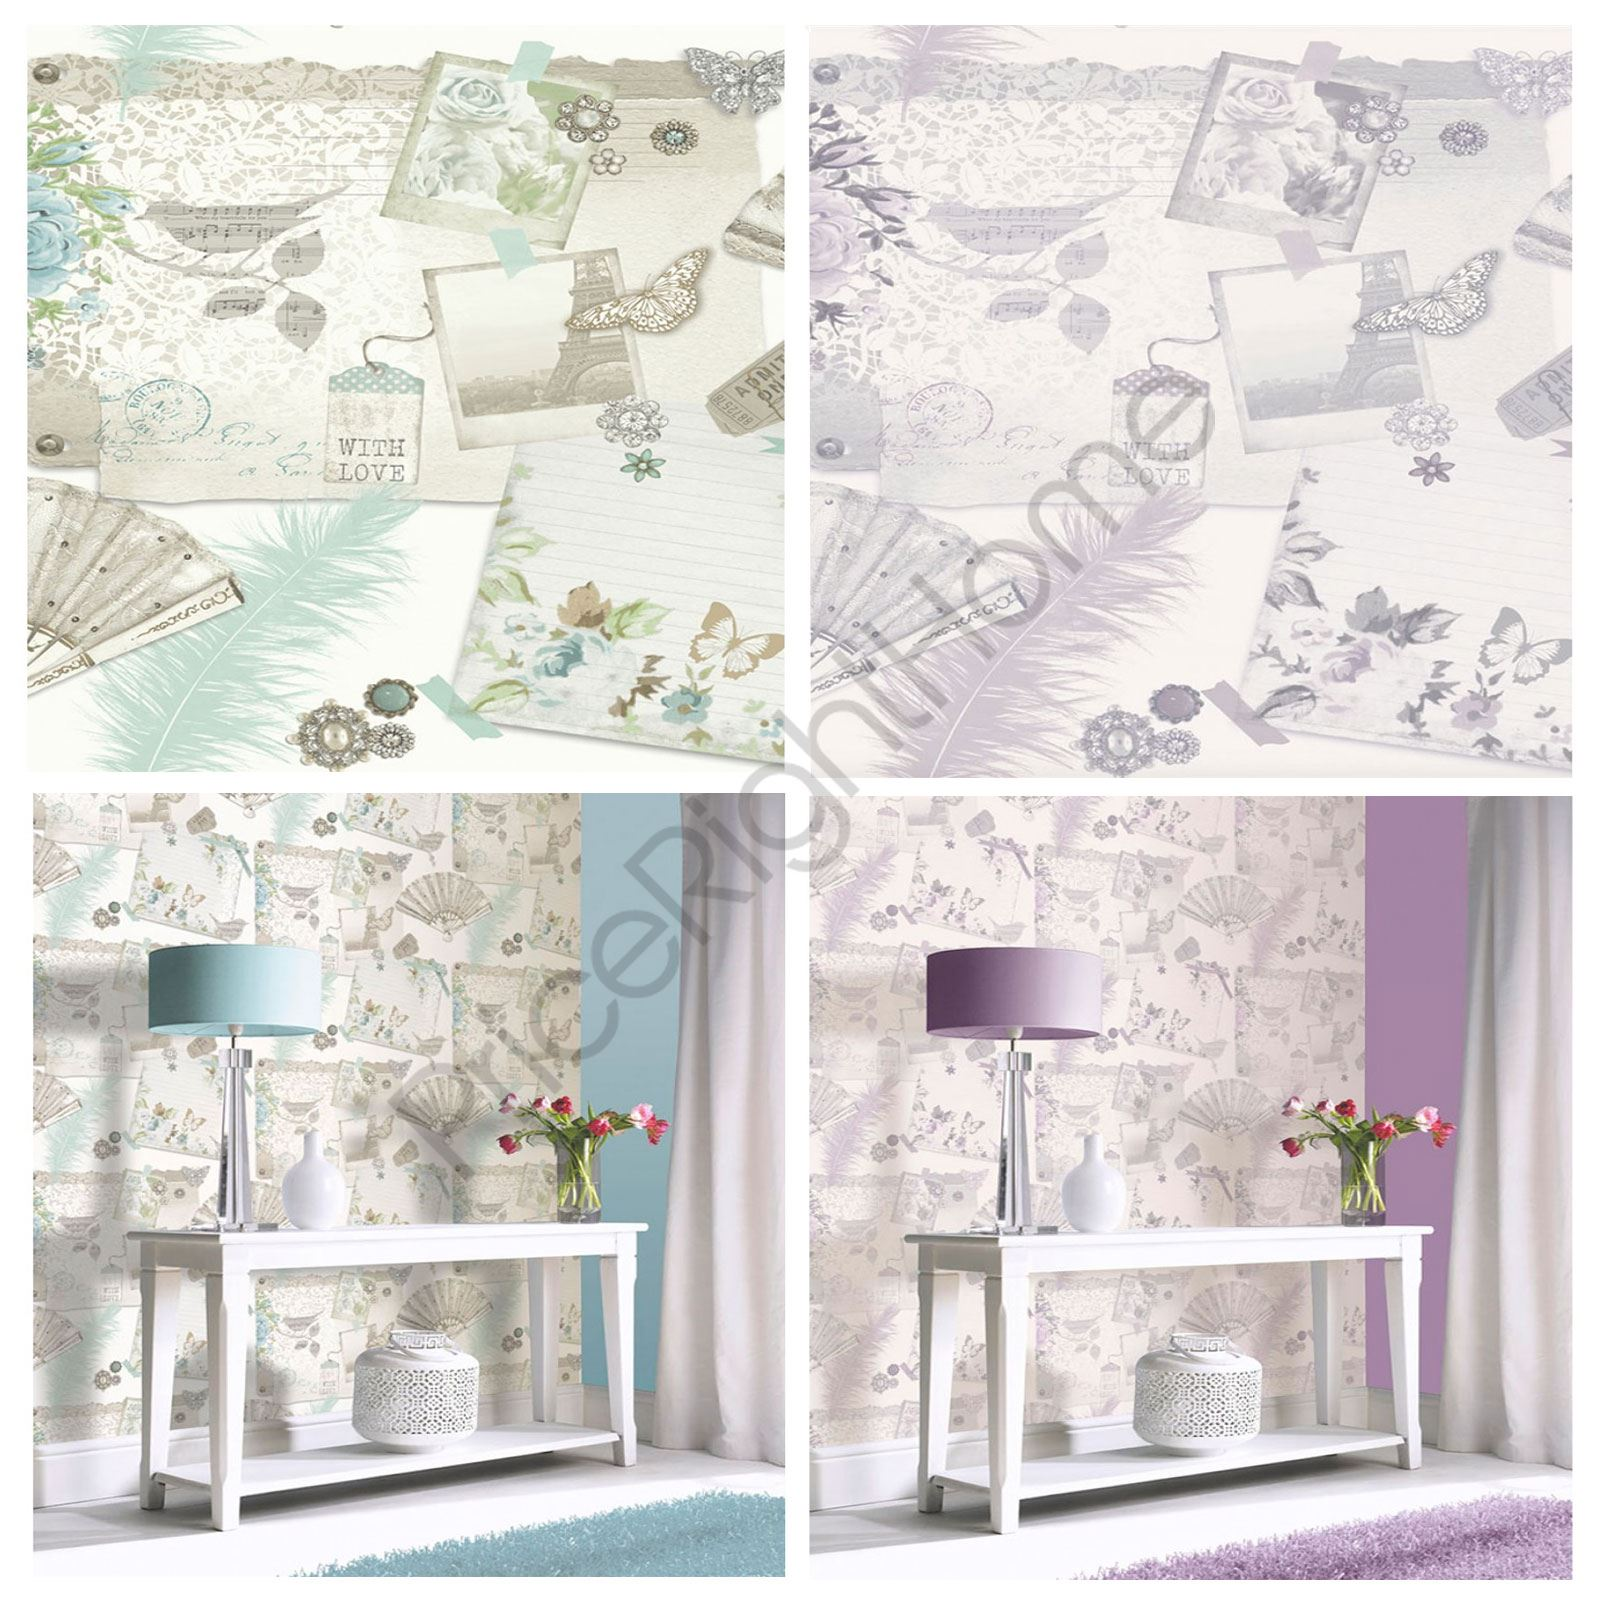 Sleigh Bedroom Sets King Bedroom Jpg Simple Bedroom Colour Design Bedroom Accessories Uk: AVAILABLE IN TEAL & LILAC